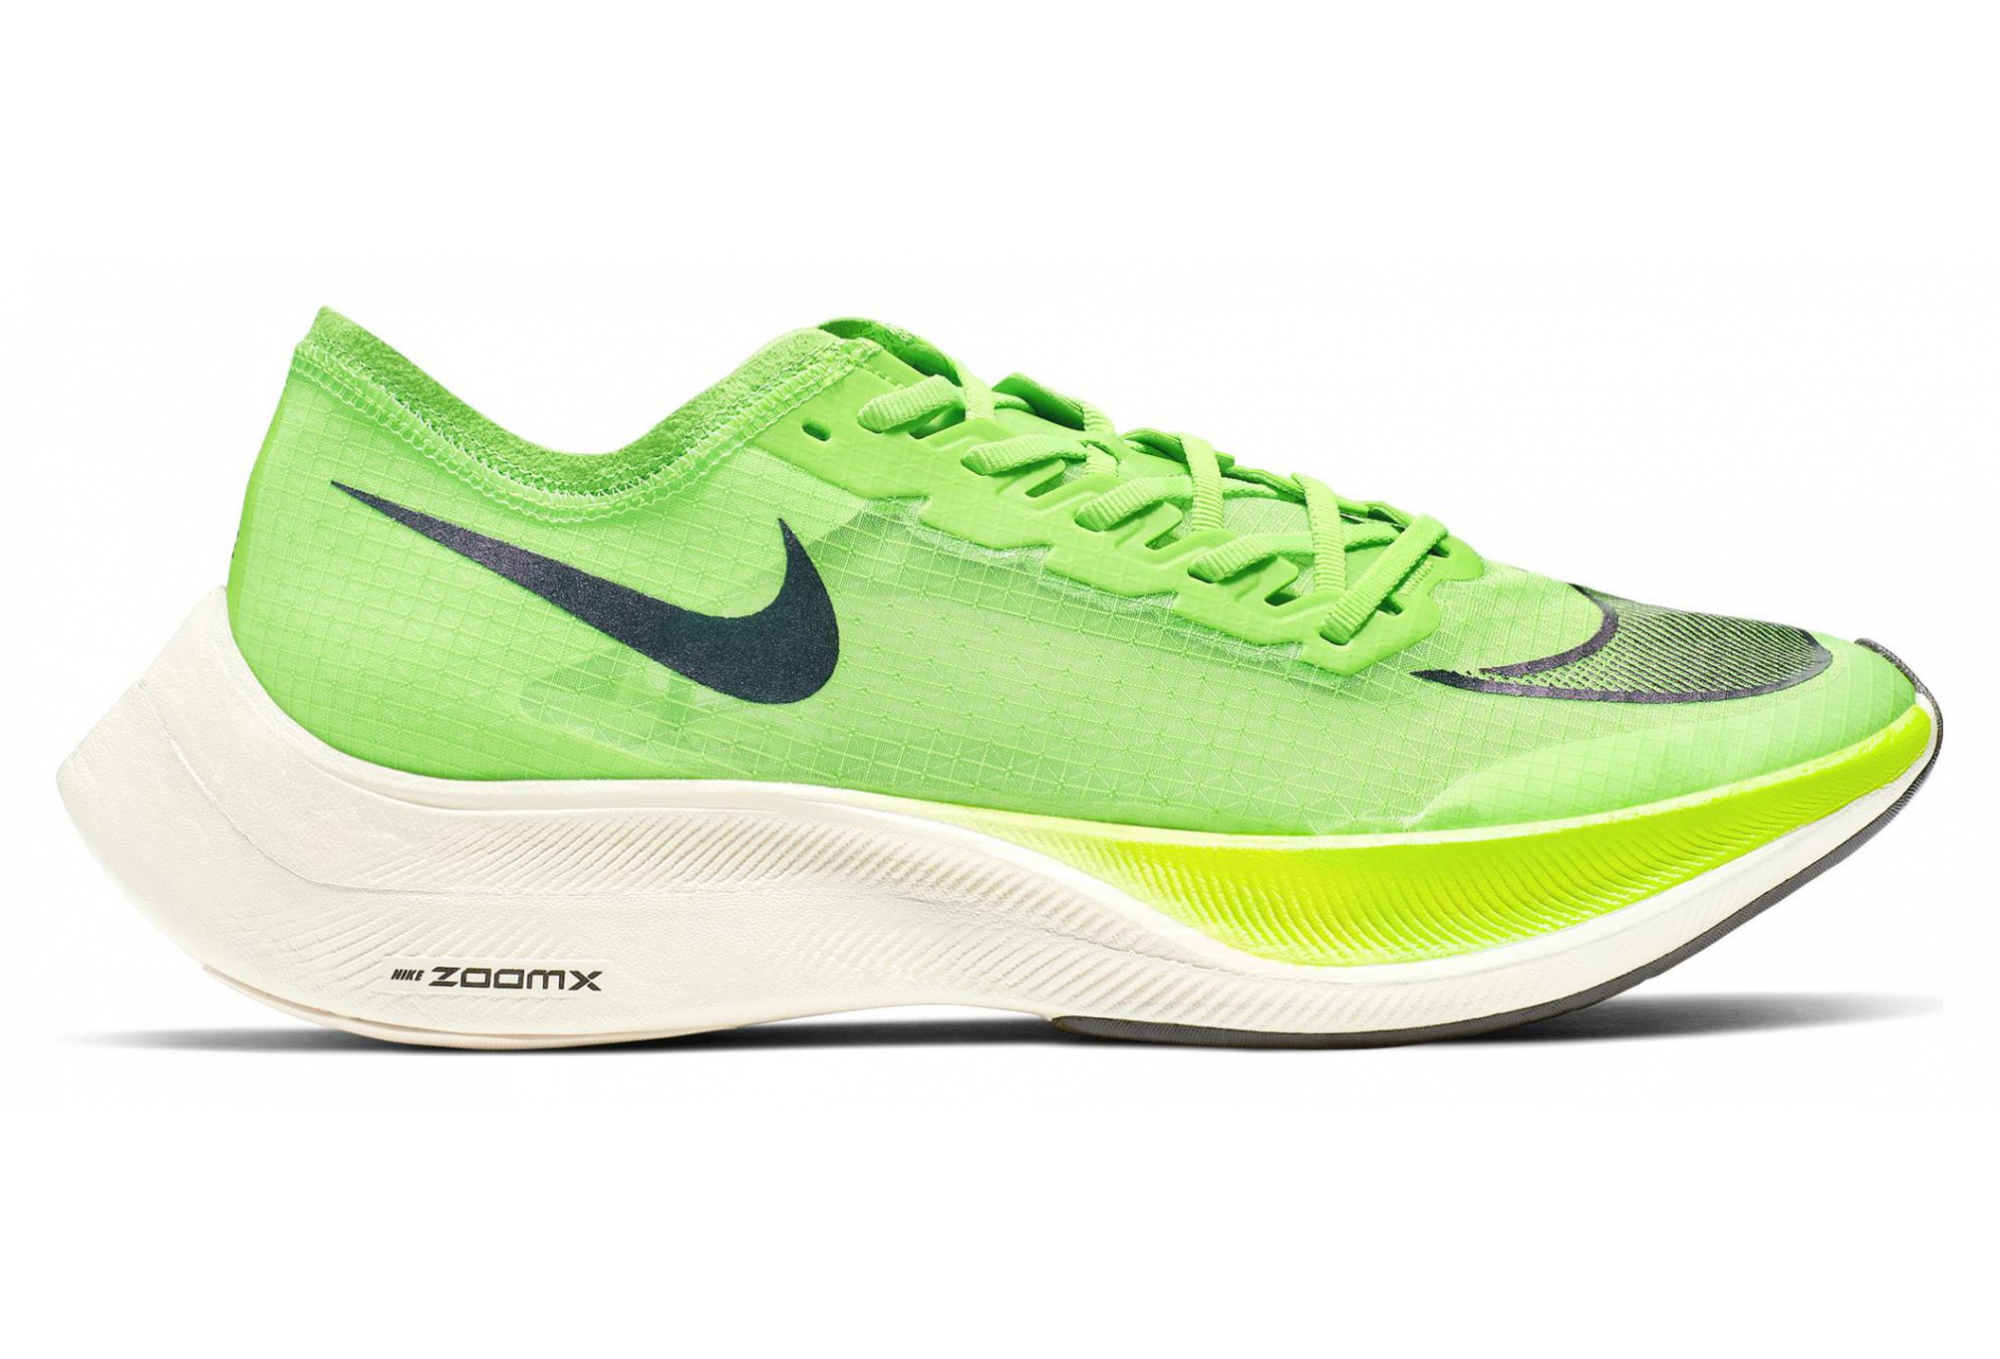 fashion style low priced get online Nike Zoom Vaporfly Next% Green Unisex